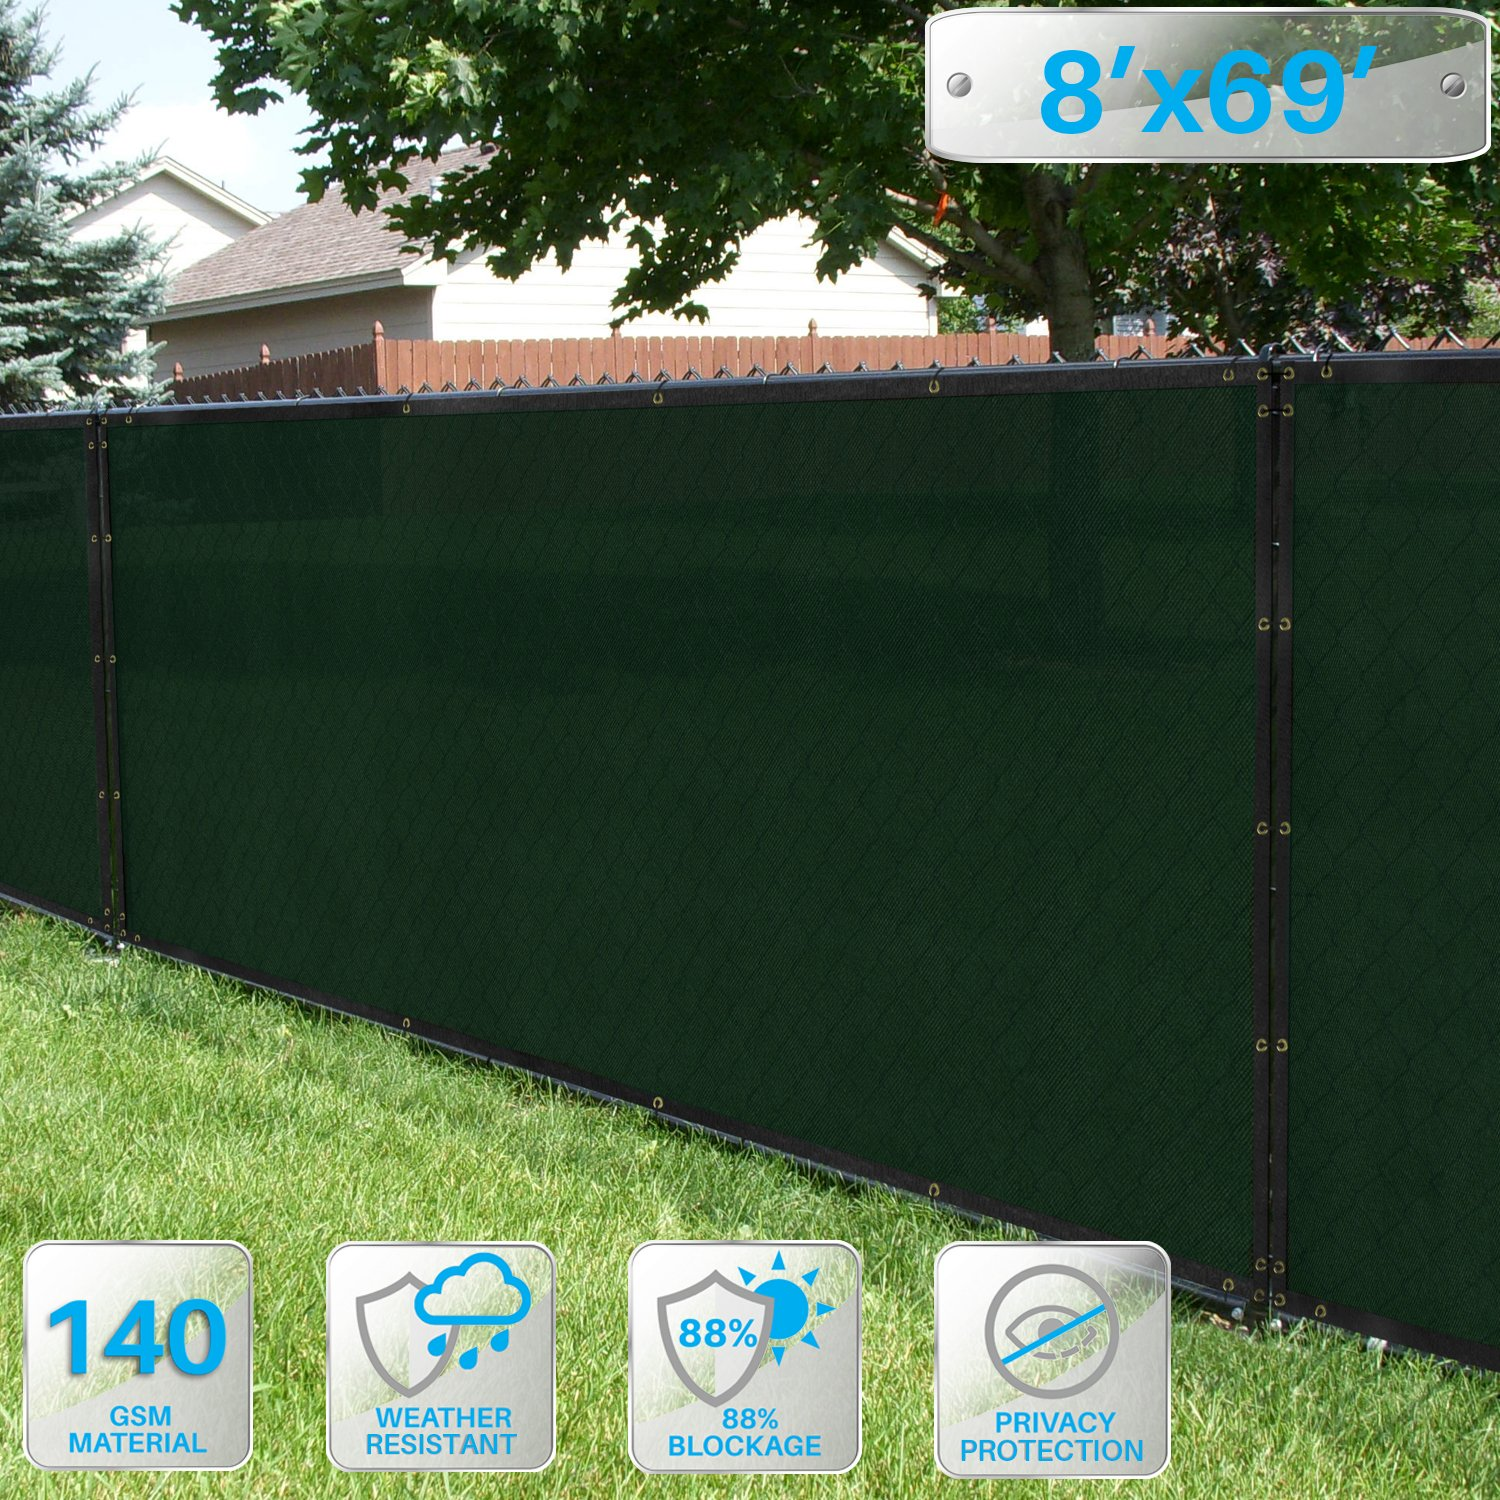 Patio Paradise 8' x 69' Dark Green Fence Privacy Screen, Commercial Outdoor Backyard Shade Windscreen Mesh Fabric with brass Gromment 85% Blockage- 3 Years Warranty (Customized Sizes Available) by Patio Paradise